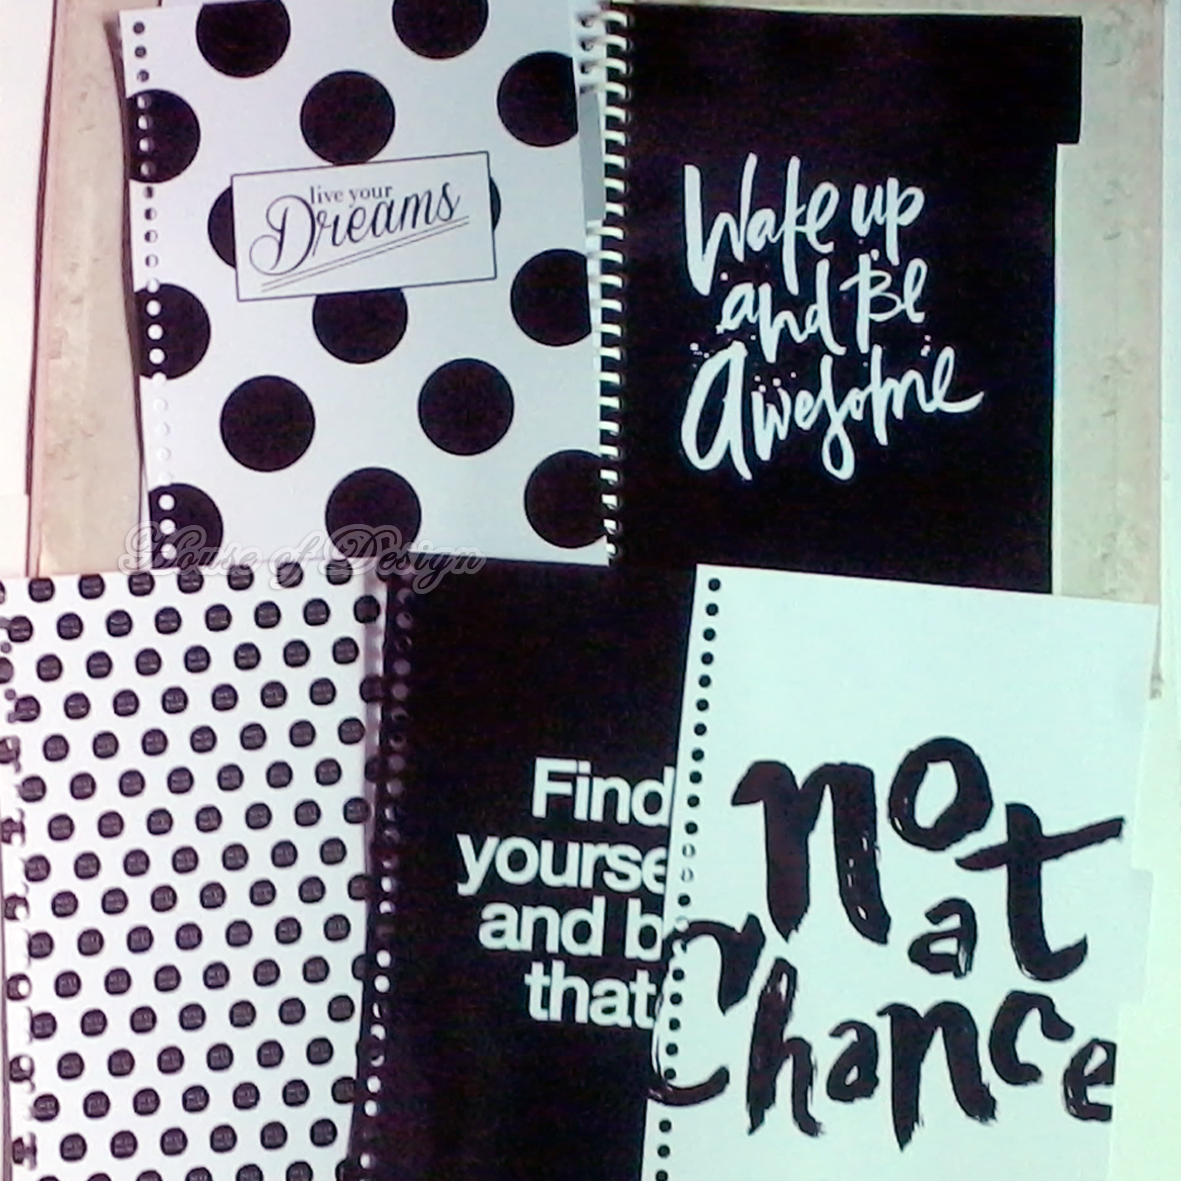 DIVIDER BINDER CUSTOM, PEMBATAS BINDER CUSTOM, PEMBATAS BINDER 26RING UKURAN B5 CUSTOM, PEMBATAS BINDER BLACK & WHITE, PEMBATAS BINDER QUOTE